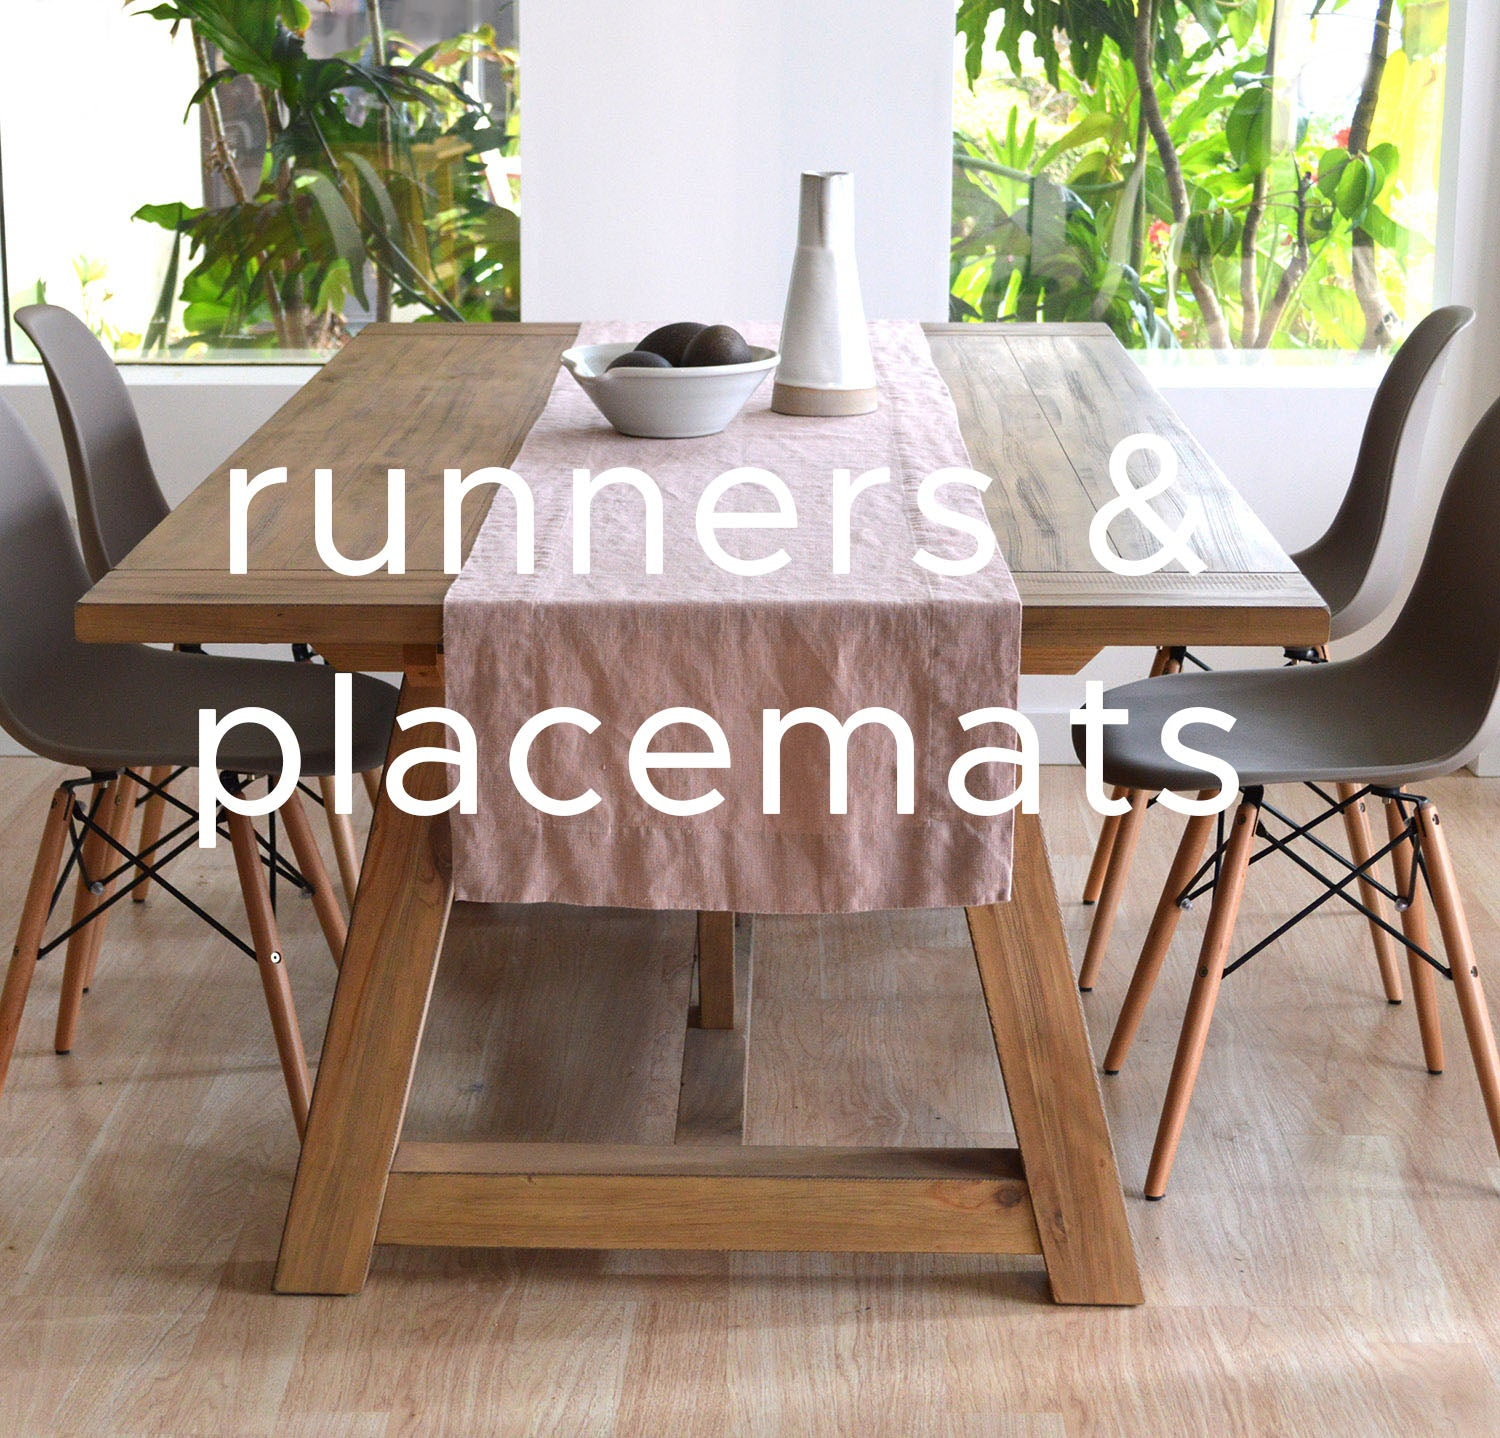 Runners & Placemats Collection